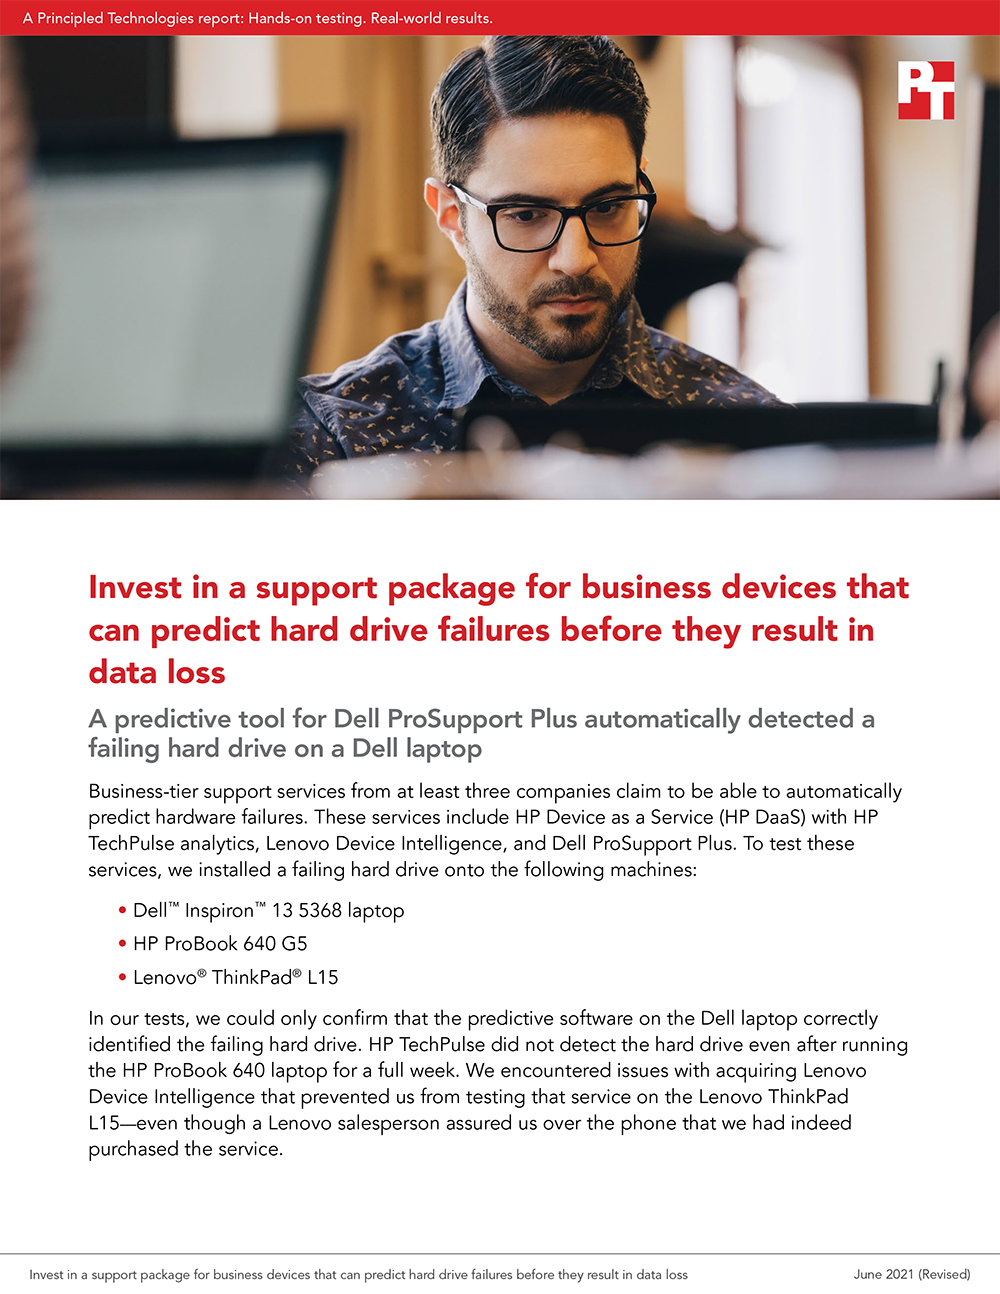 Principled Technologies Releases Study on Three Support Services' Ability to Detect Hard Drive Issues